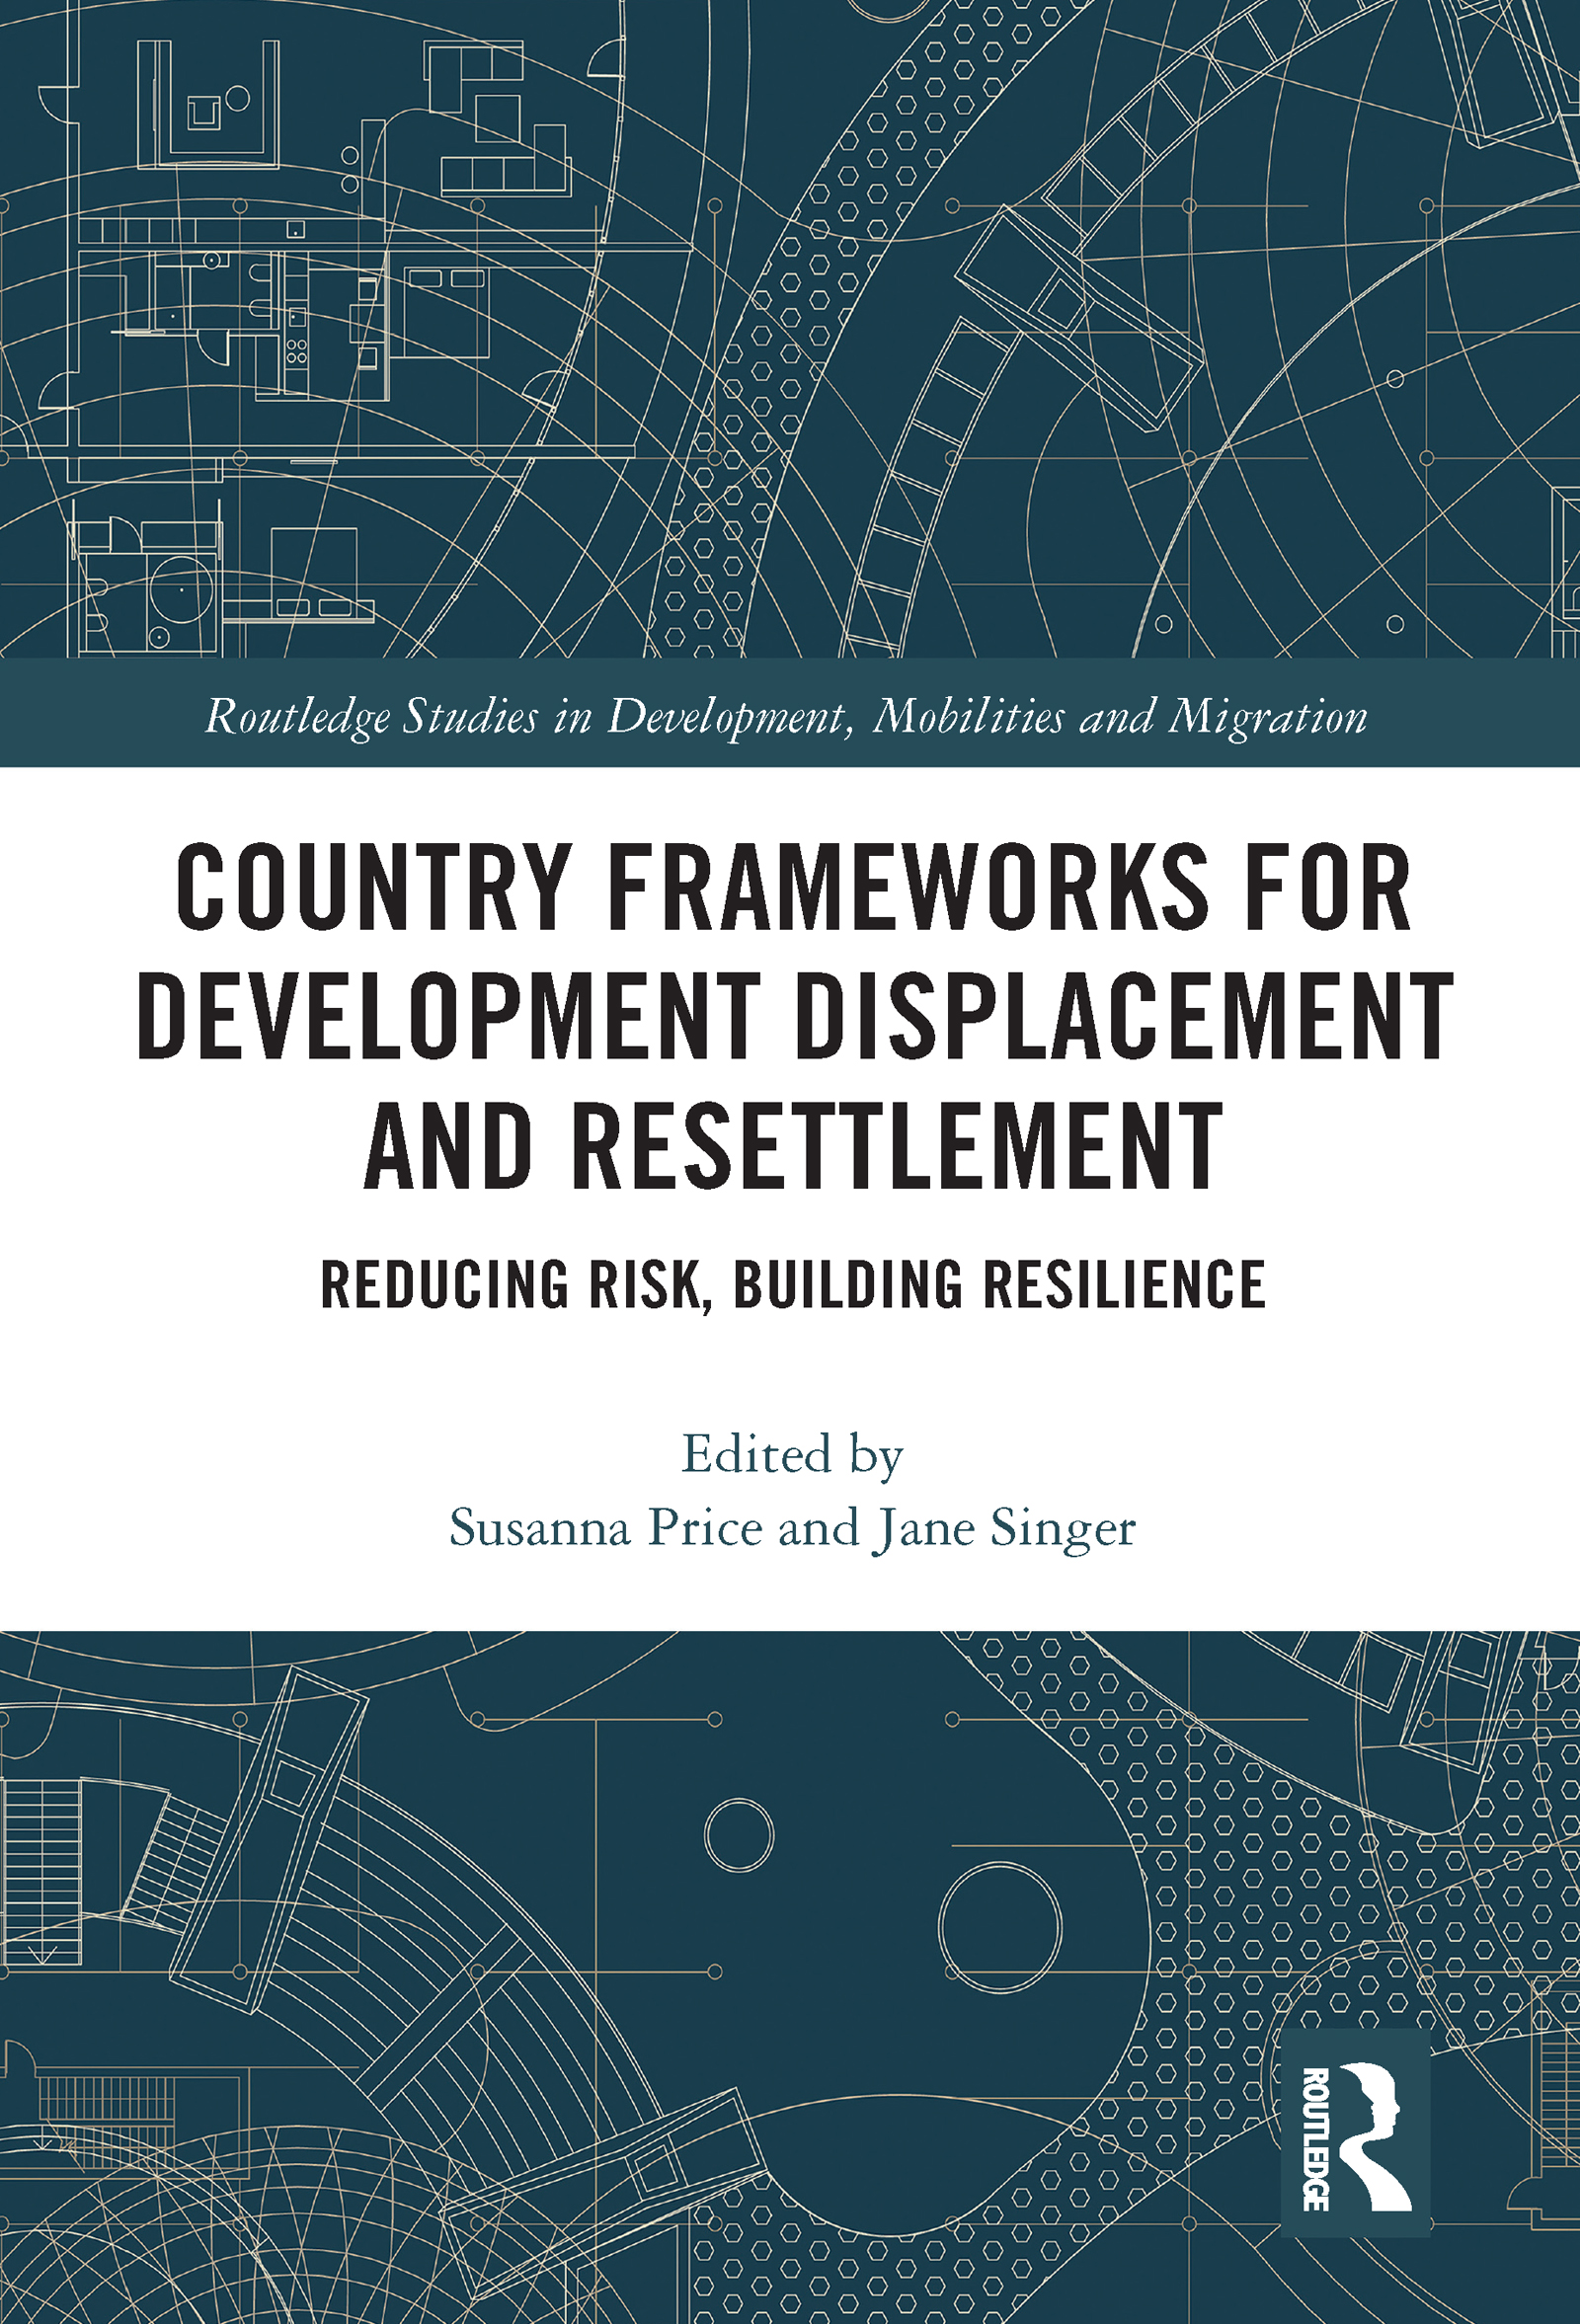 Country Frameworks for Development Displacement and Resettlement